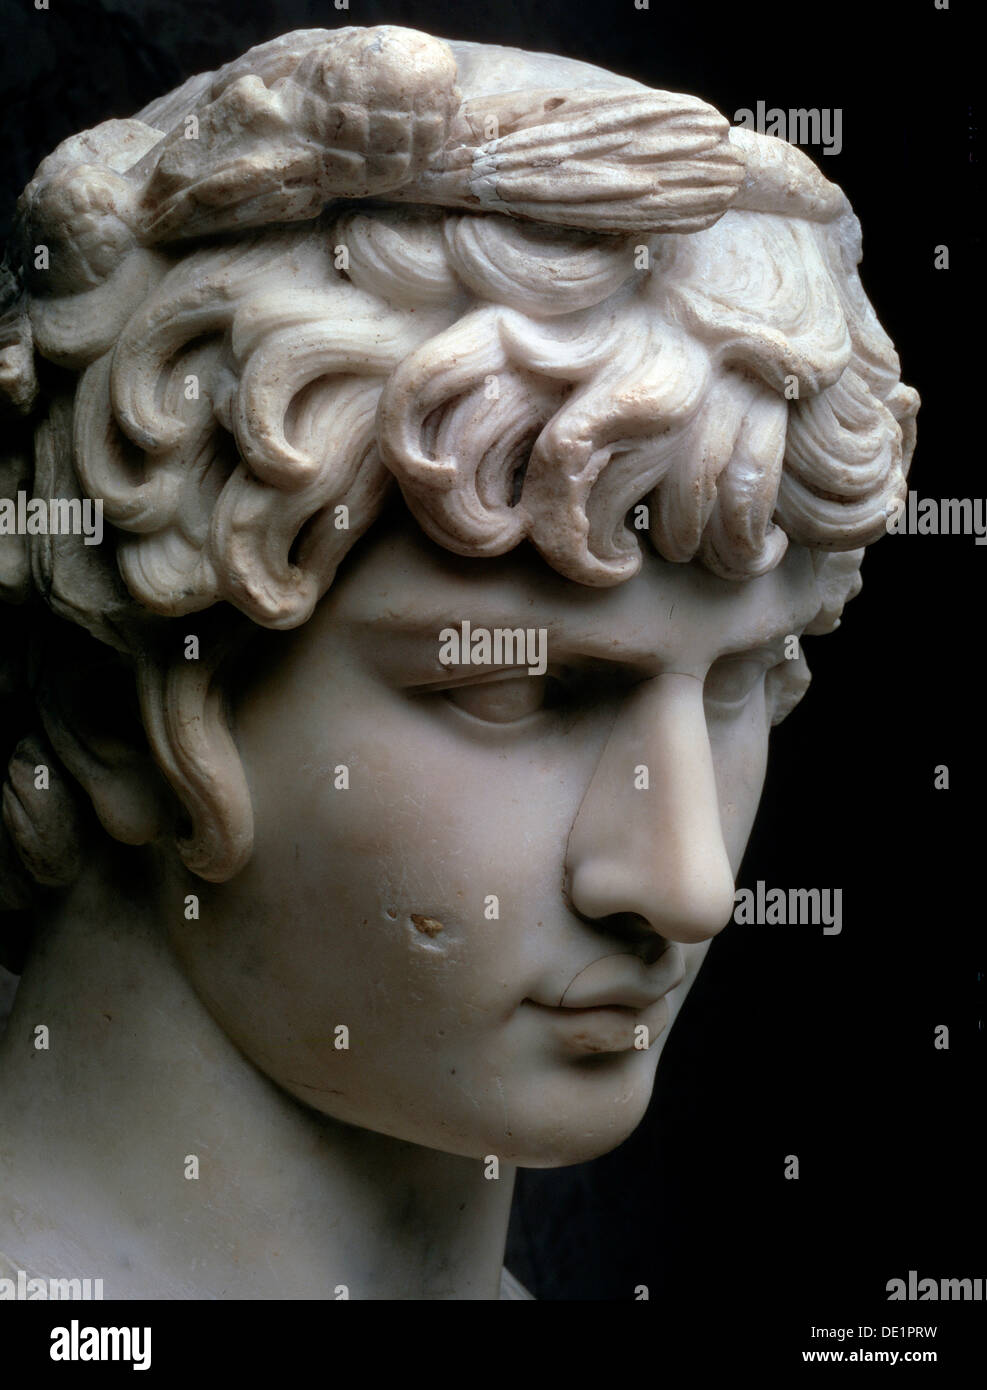 'Bust of Antinous', mid 2nd century AD. - Stock Image